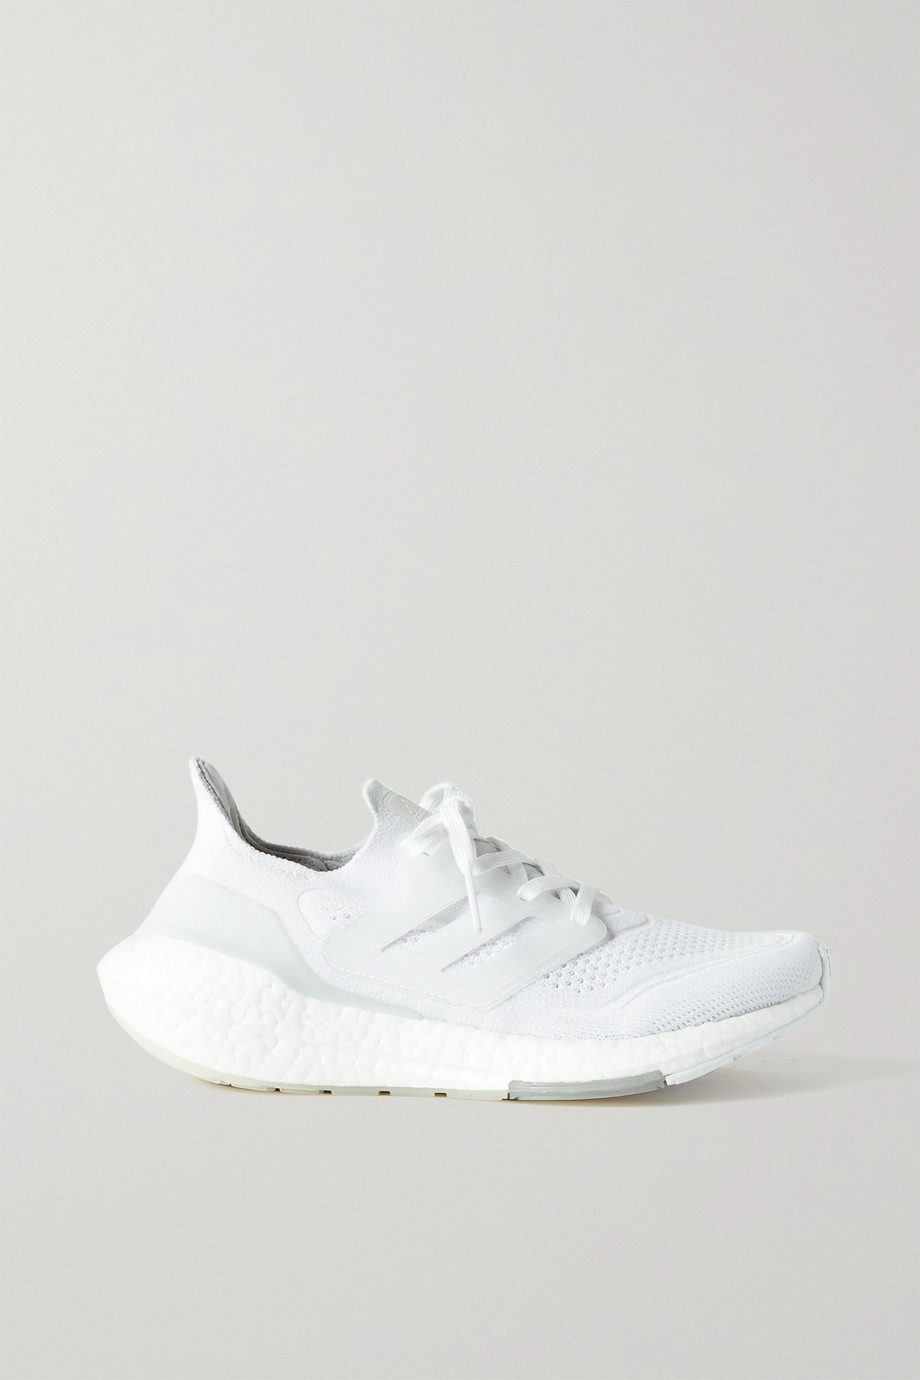 adidas Originals + NET SUSTAIN UltraBOOST 21 Primeblue and rubber sneakers